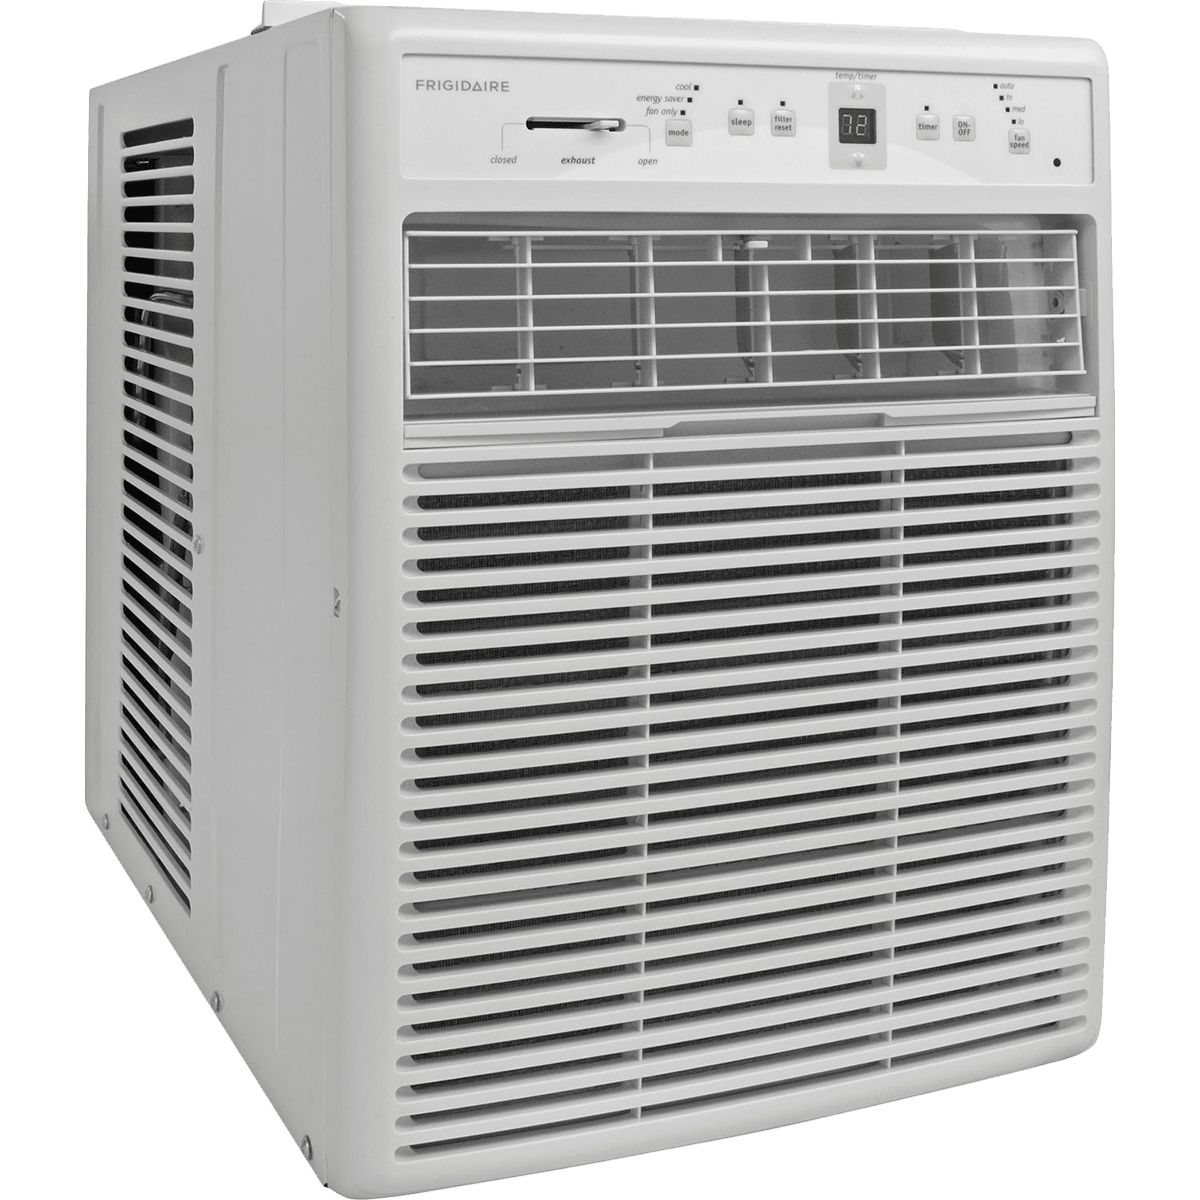 Frigidaire FFRS1022R1 10,000 BTU Casement Window Air Conditioner - Angle